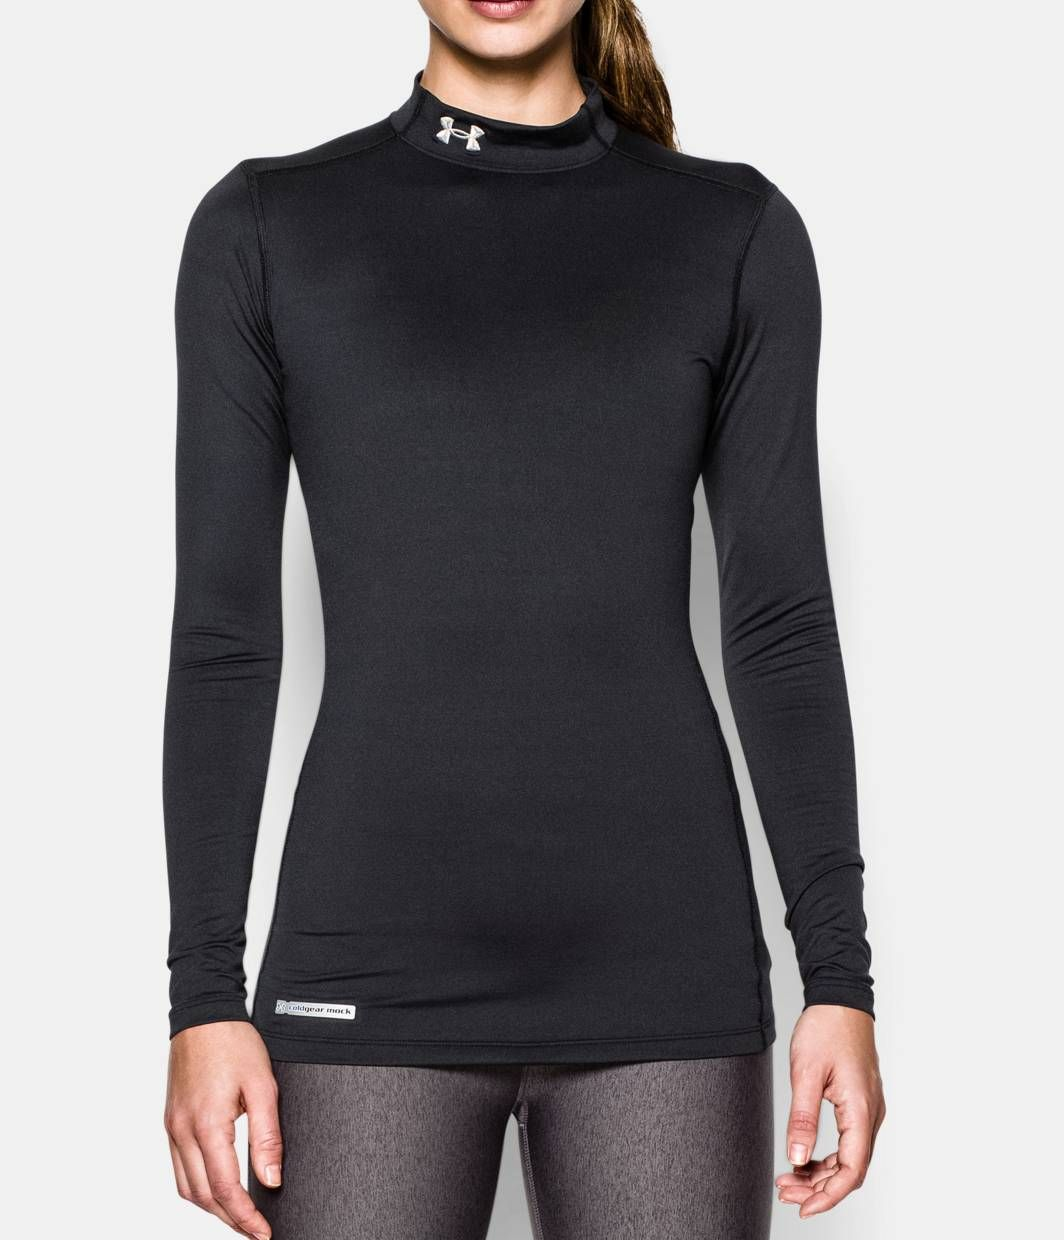 Thermal compression shirt by underarmor keeps you warm